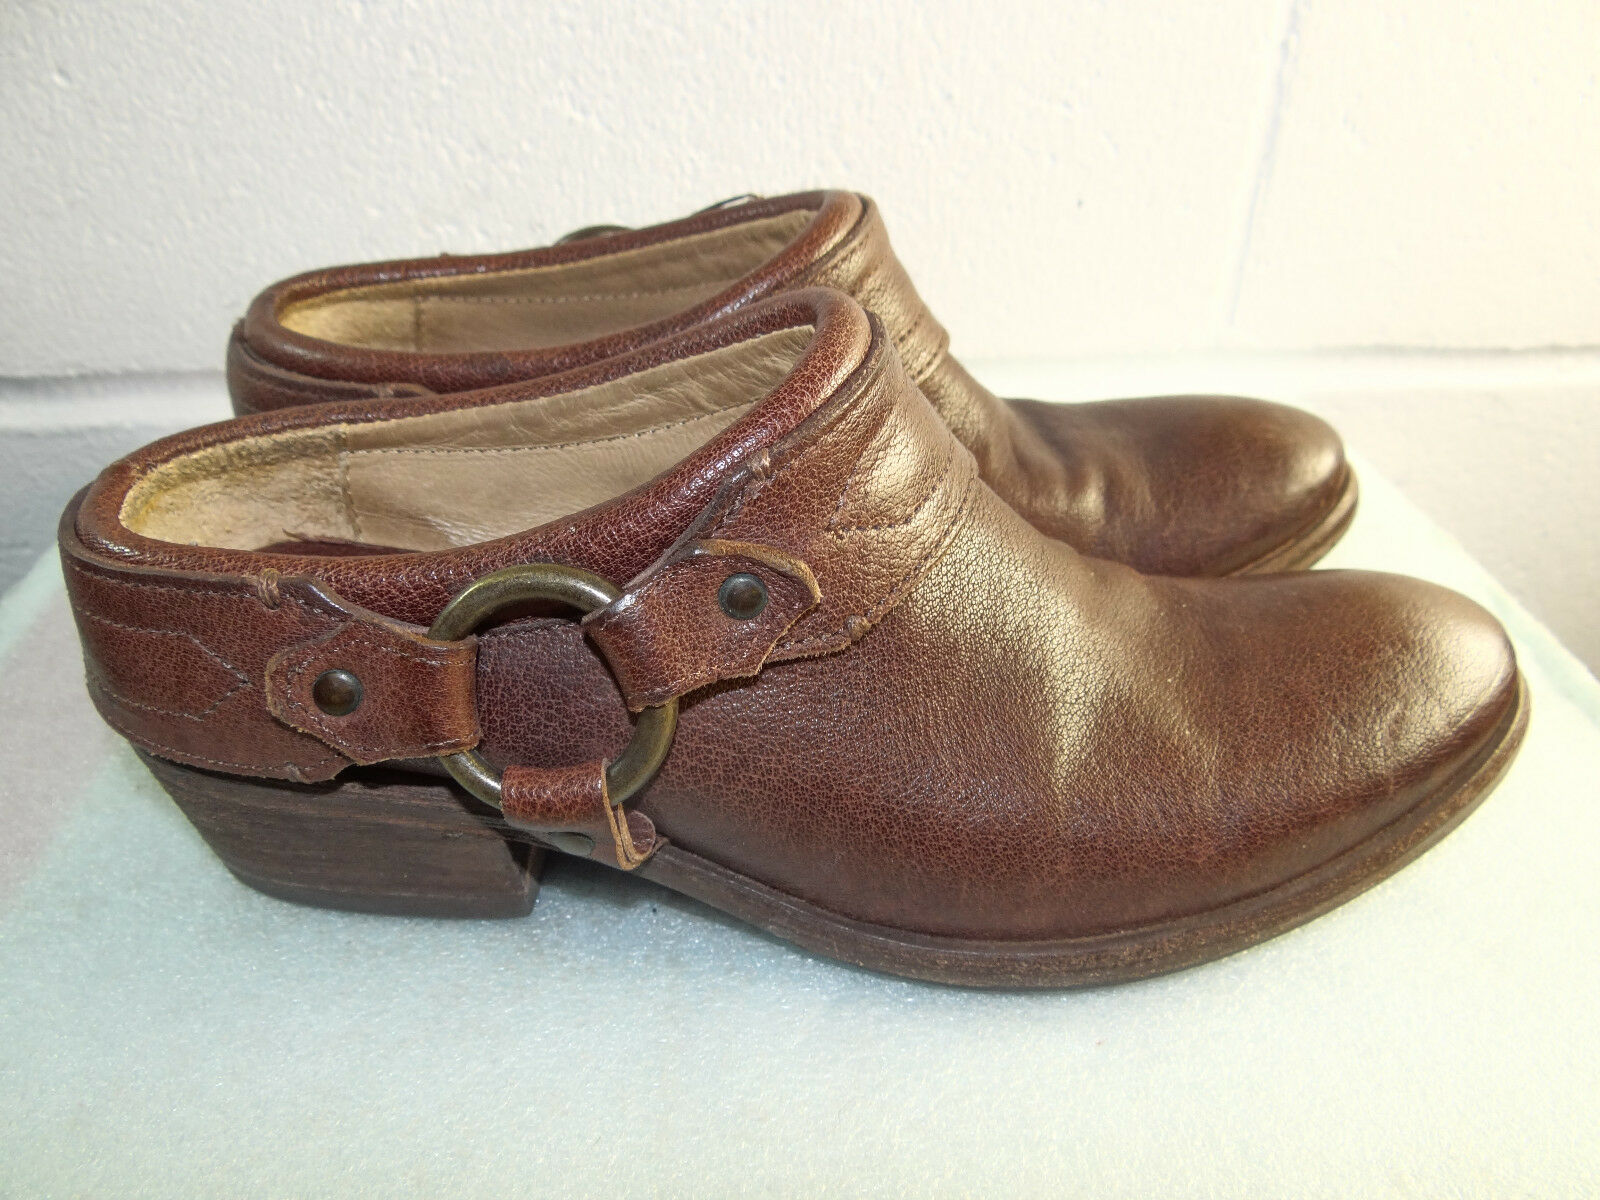 FRYE Brown Leather Harness Mule Clog Women Size 6.5B Made in MEXICO